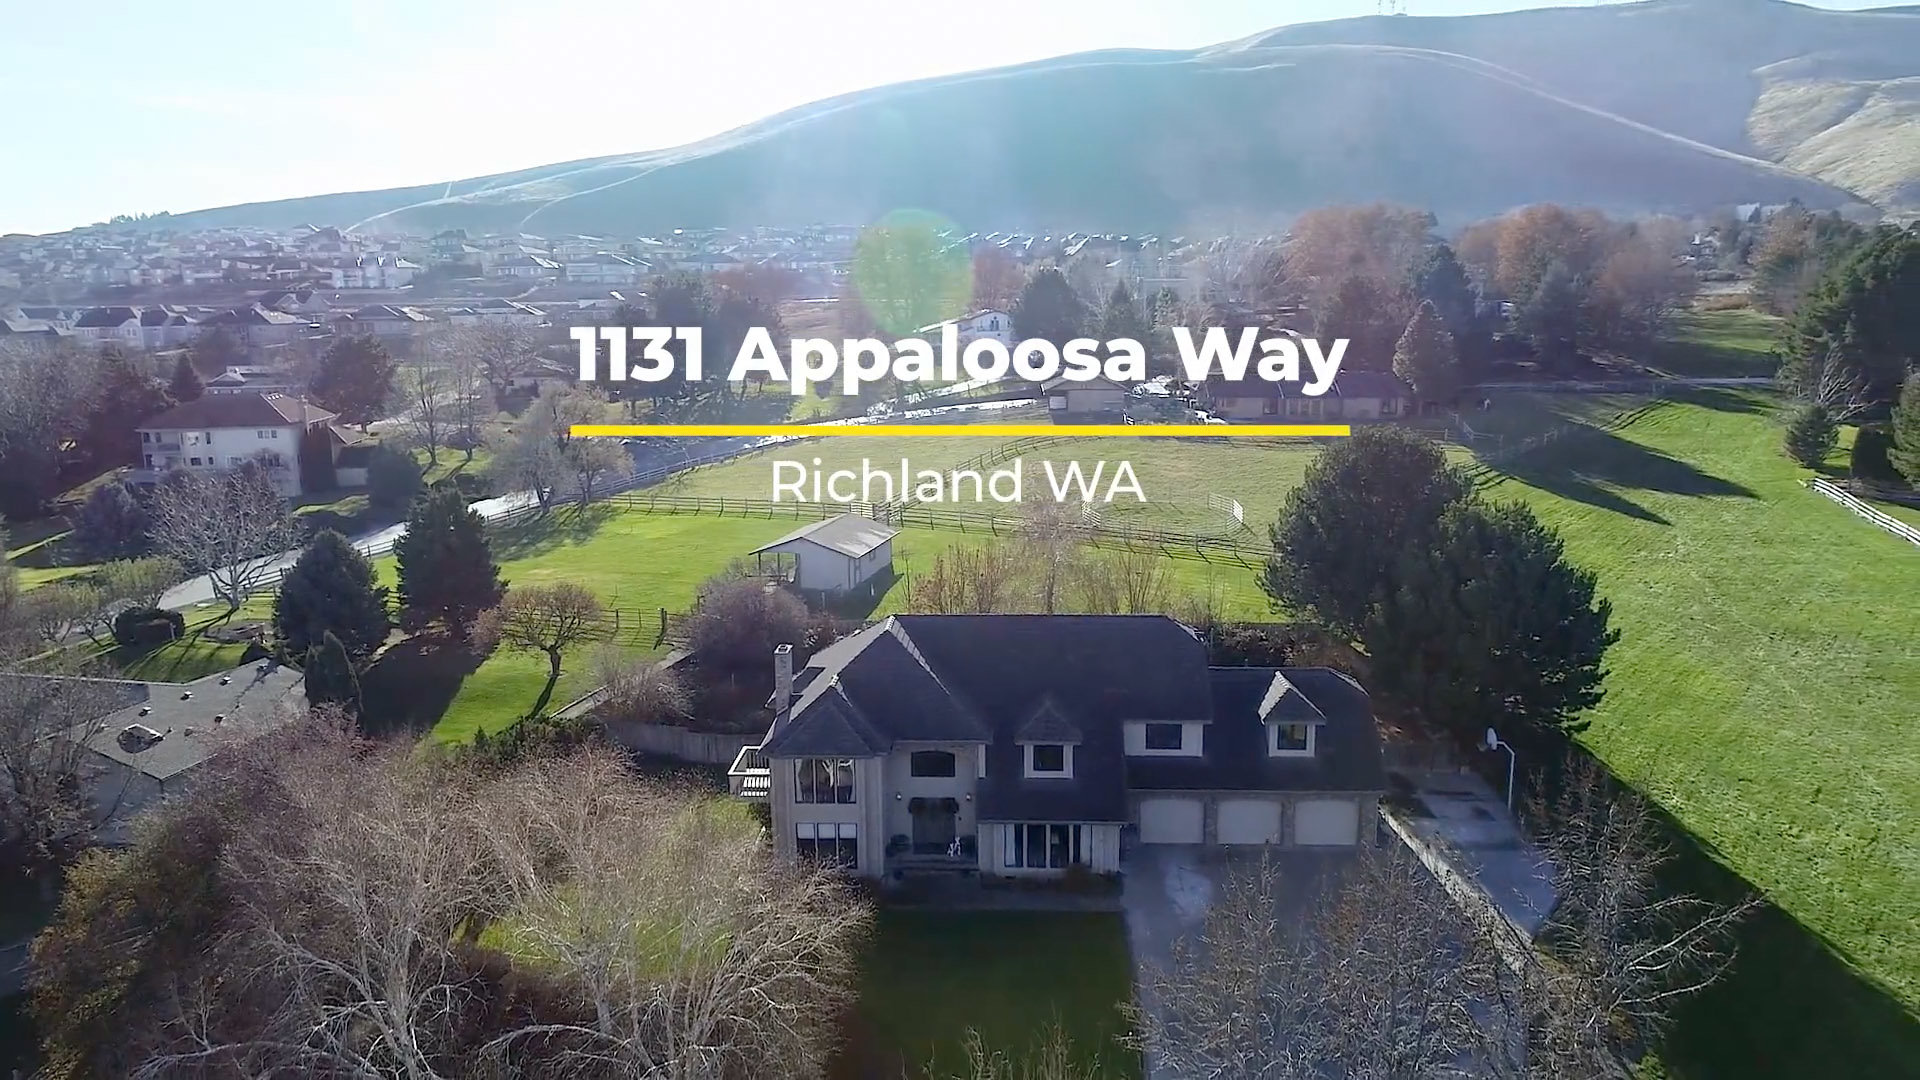 1131 Appaloosa Way - Richland Homes for Sale